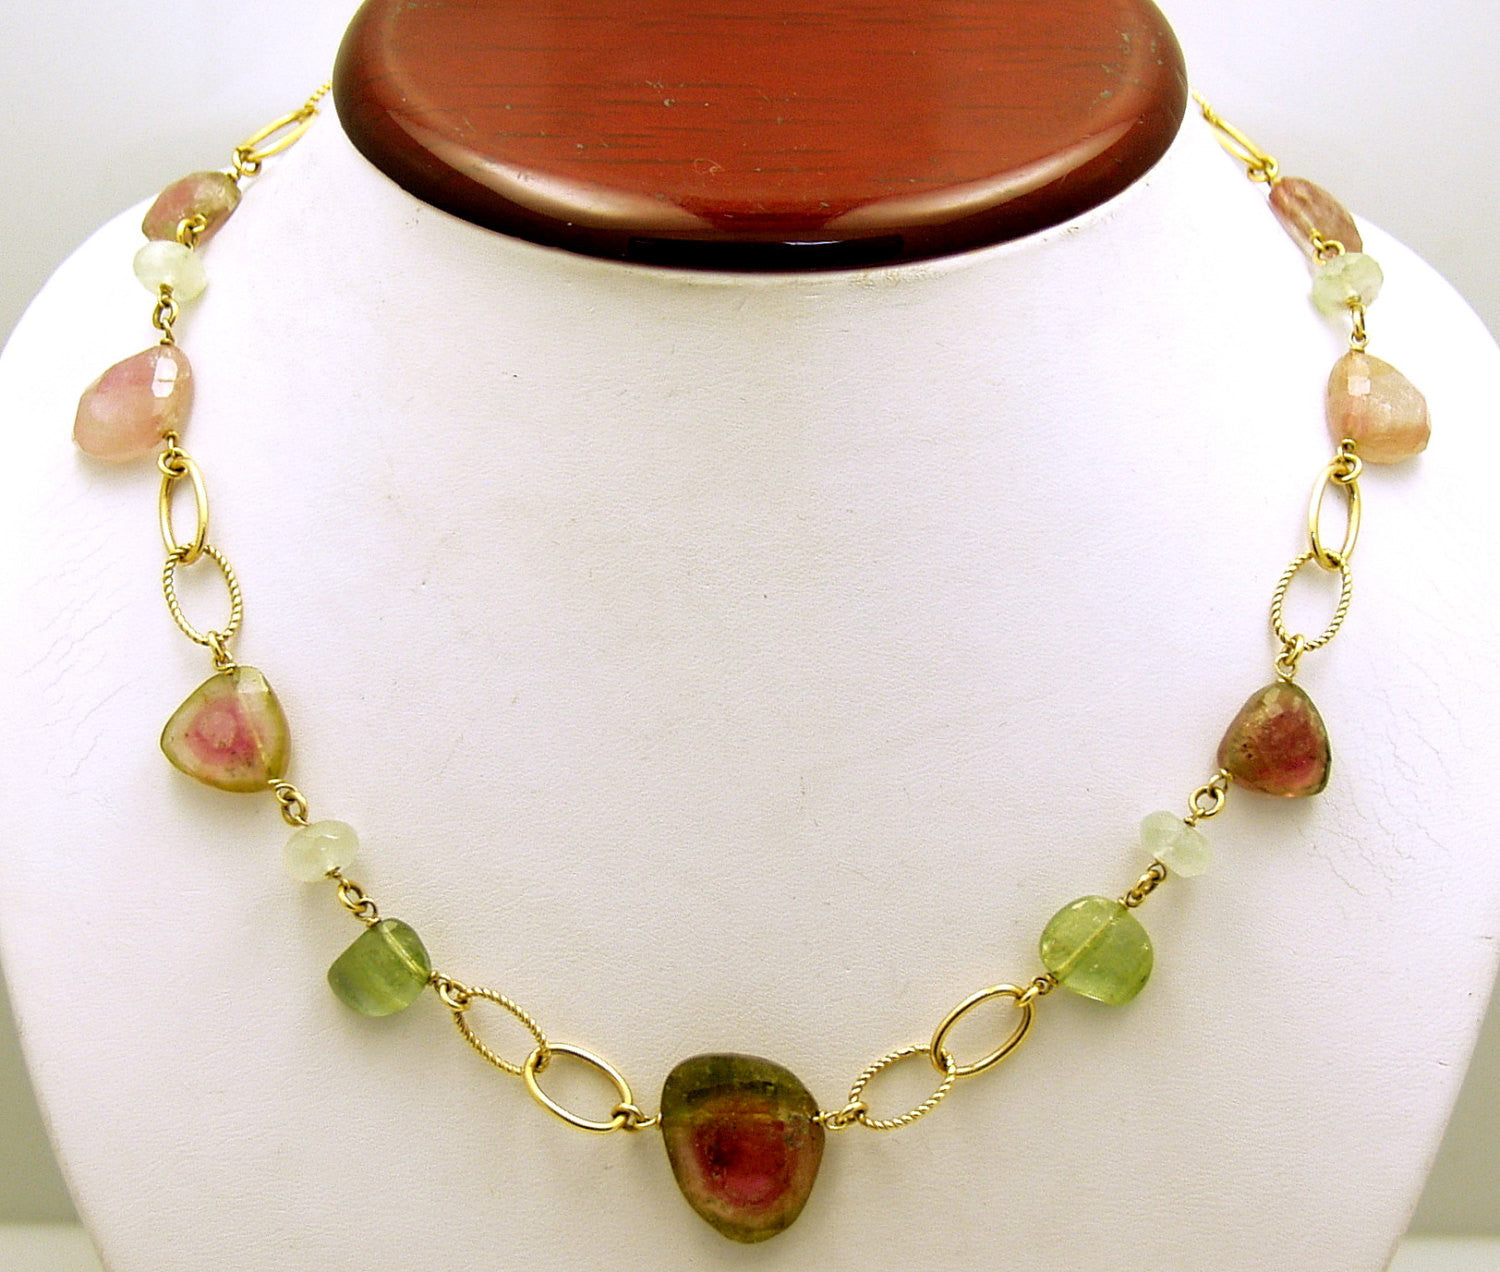 Natural-Cut Watermelon Tourmaline Necklace